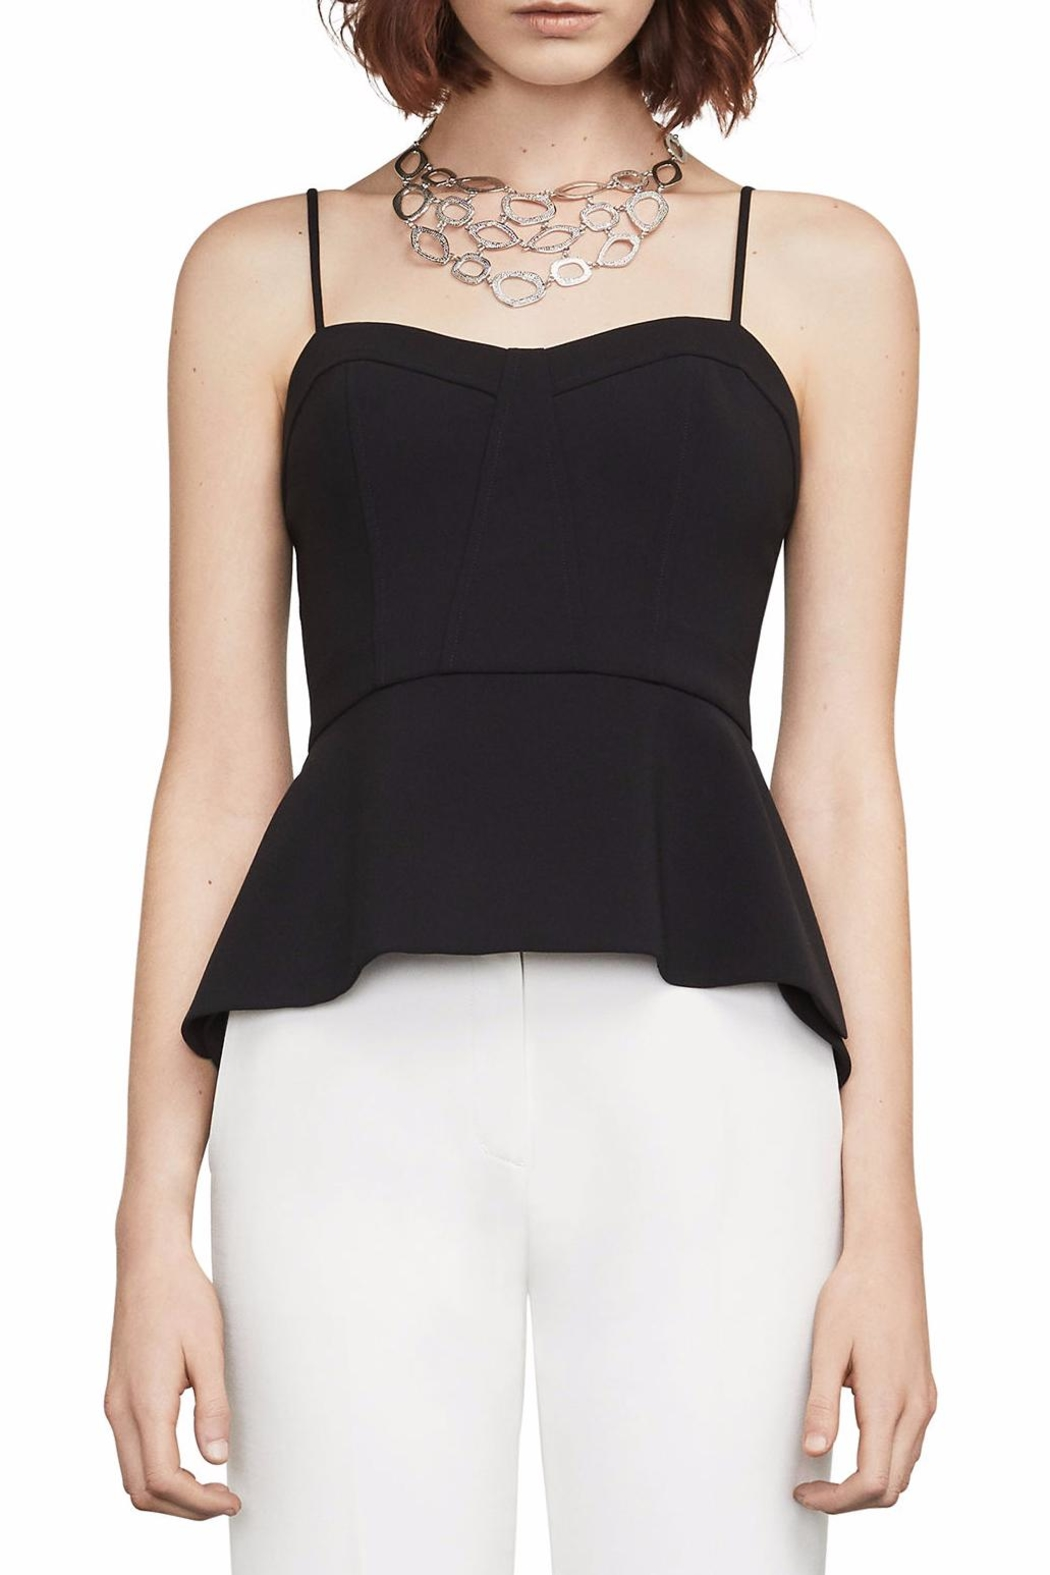 3a2ad6be80f17b BCBG Max Azria Shanna Bustier Top from Ohio by e.j. hannah — Shoptiques